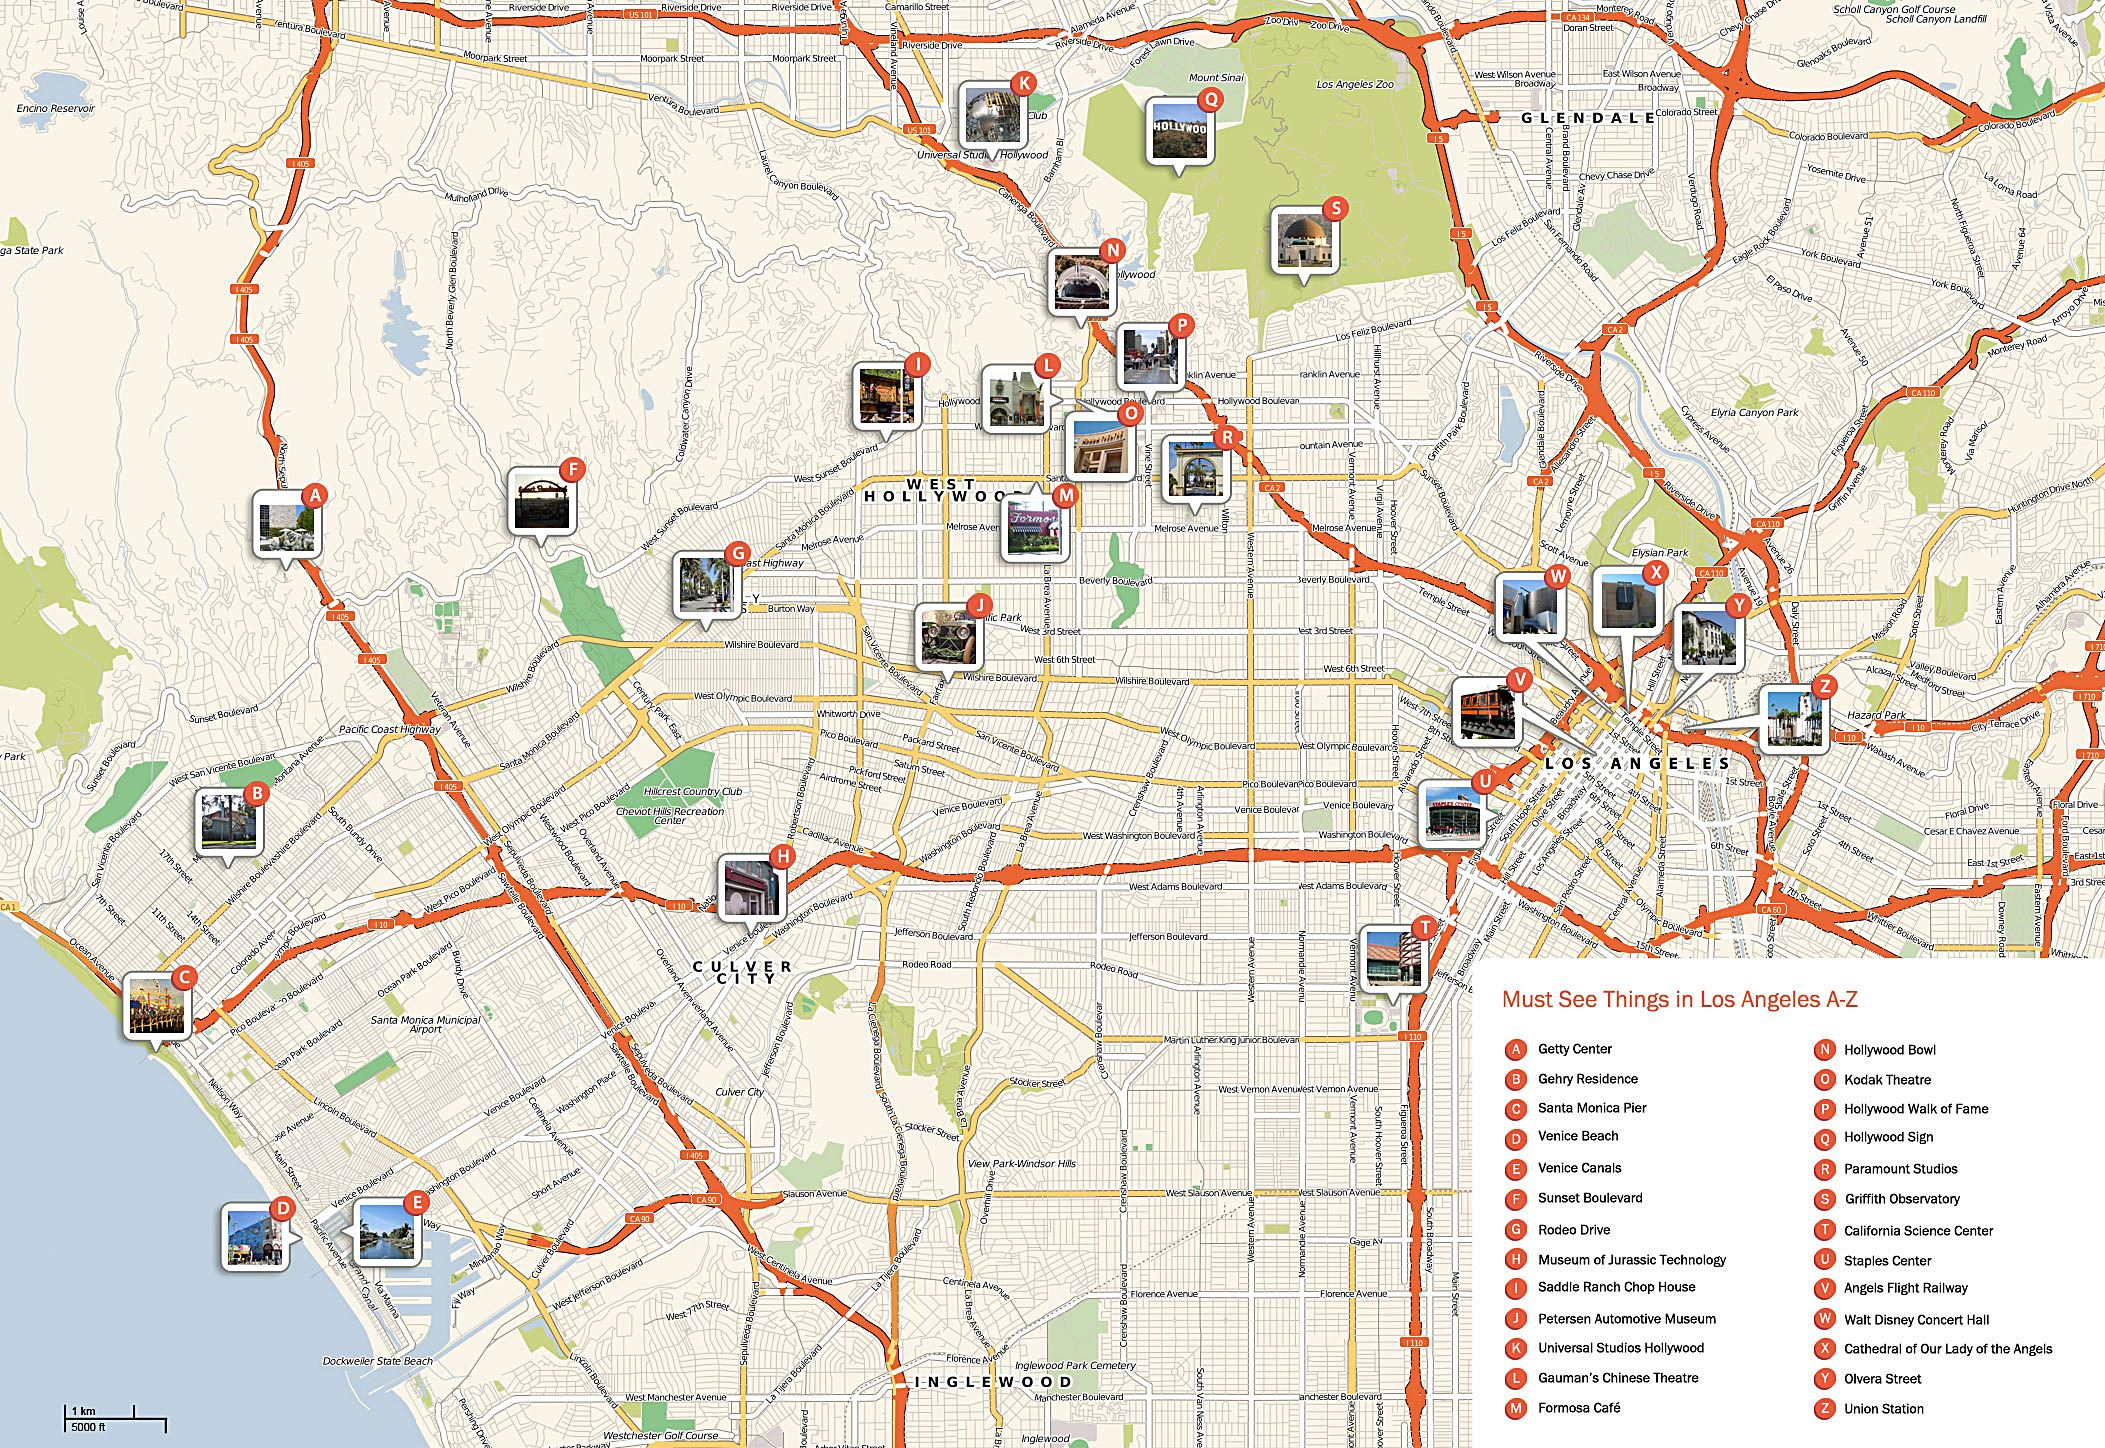 Large Los Angeles Maps For Free Download And Print High - Los angeles map download